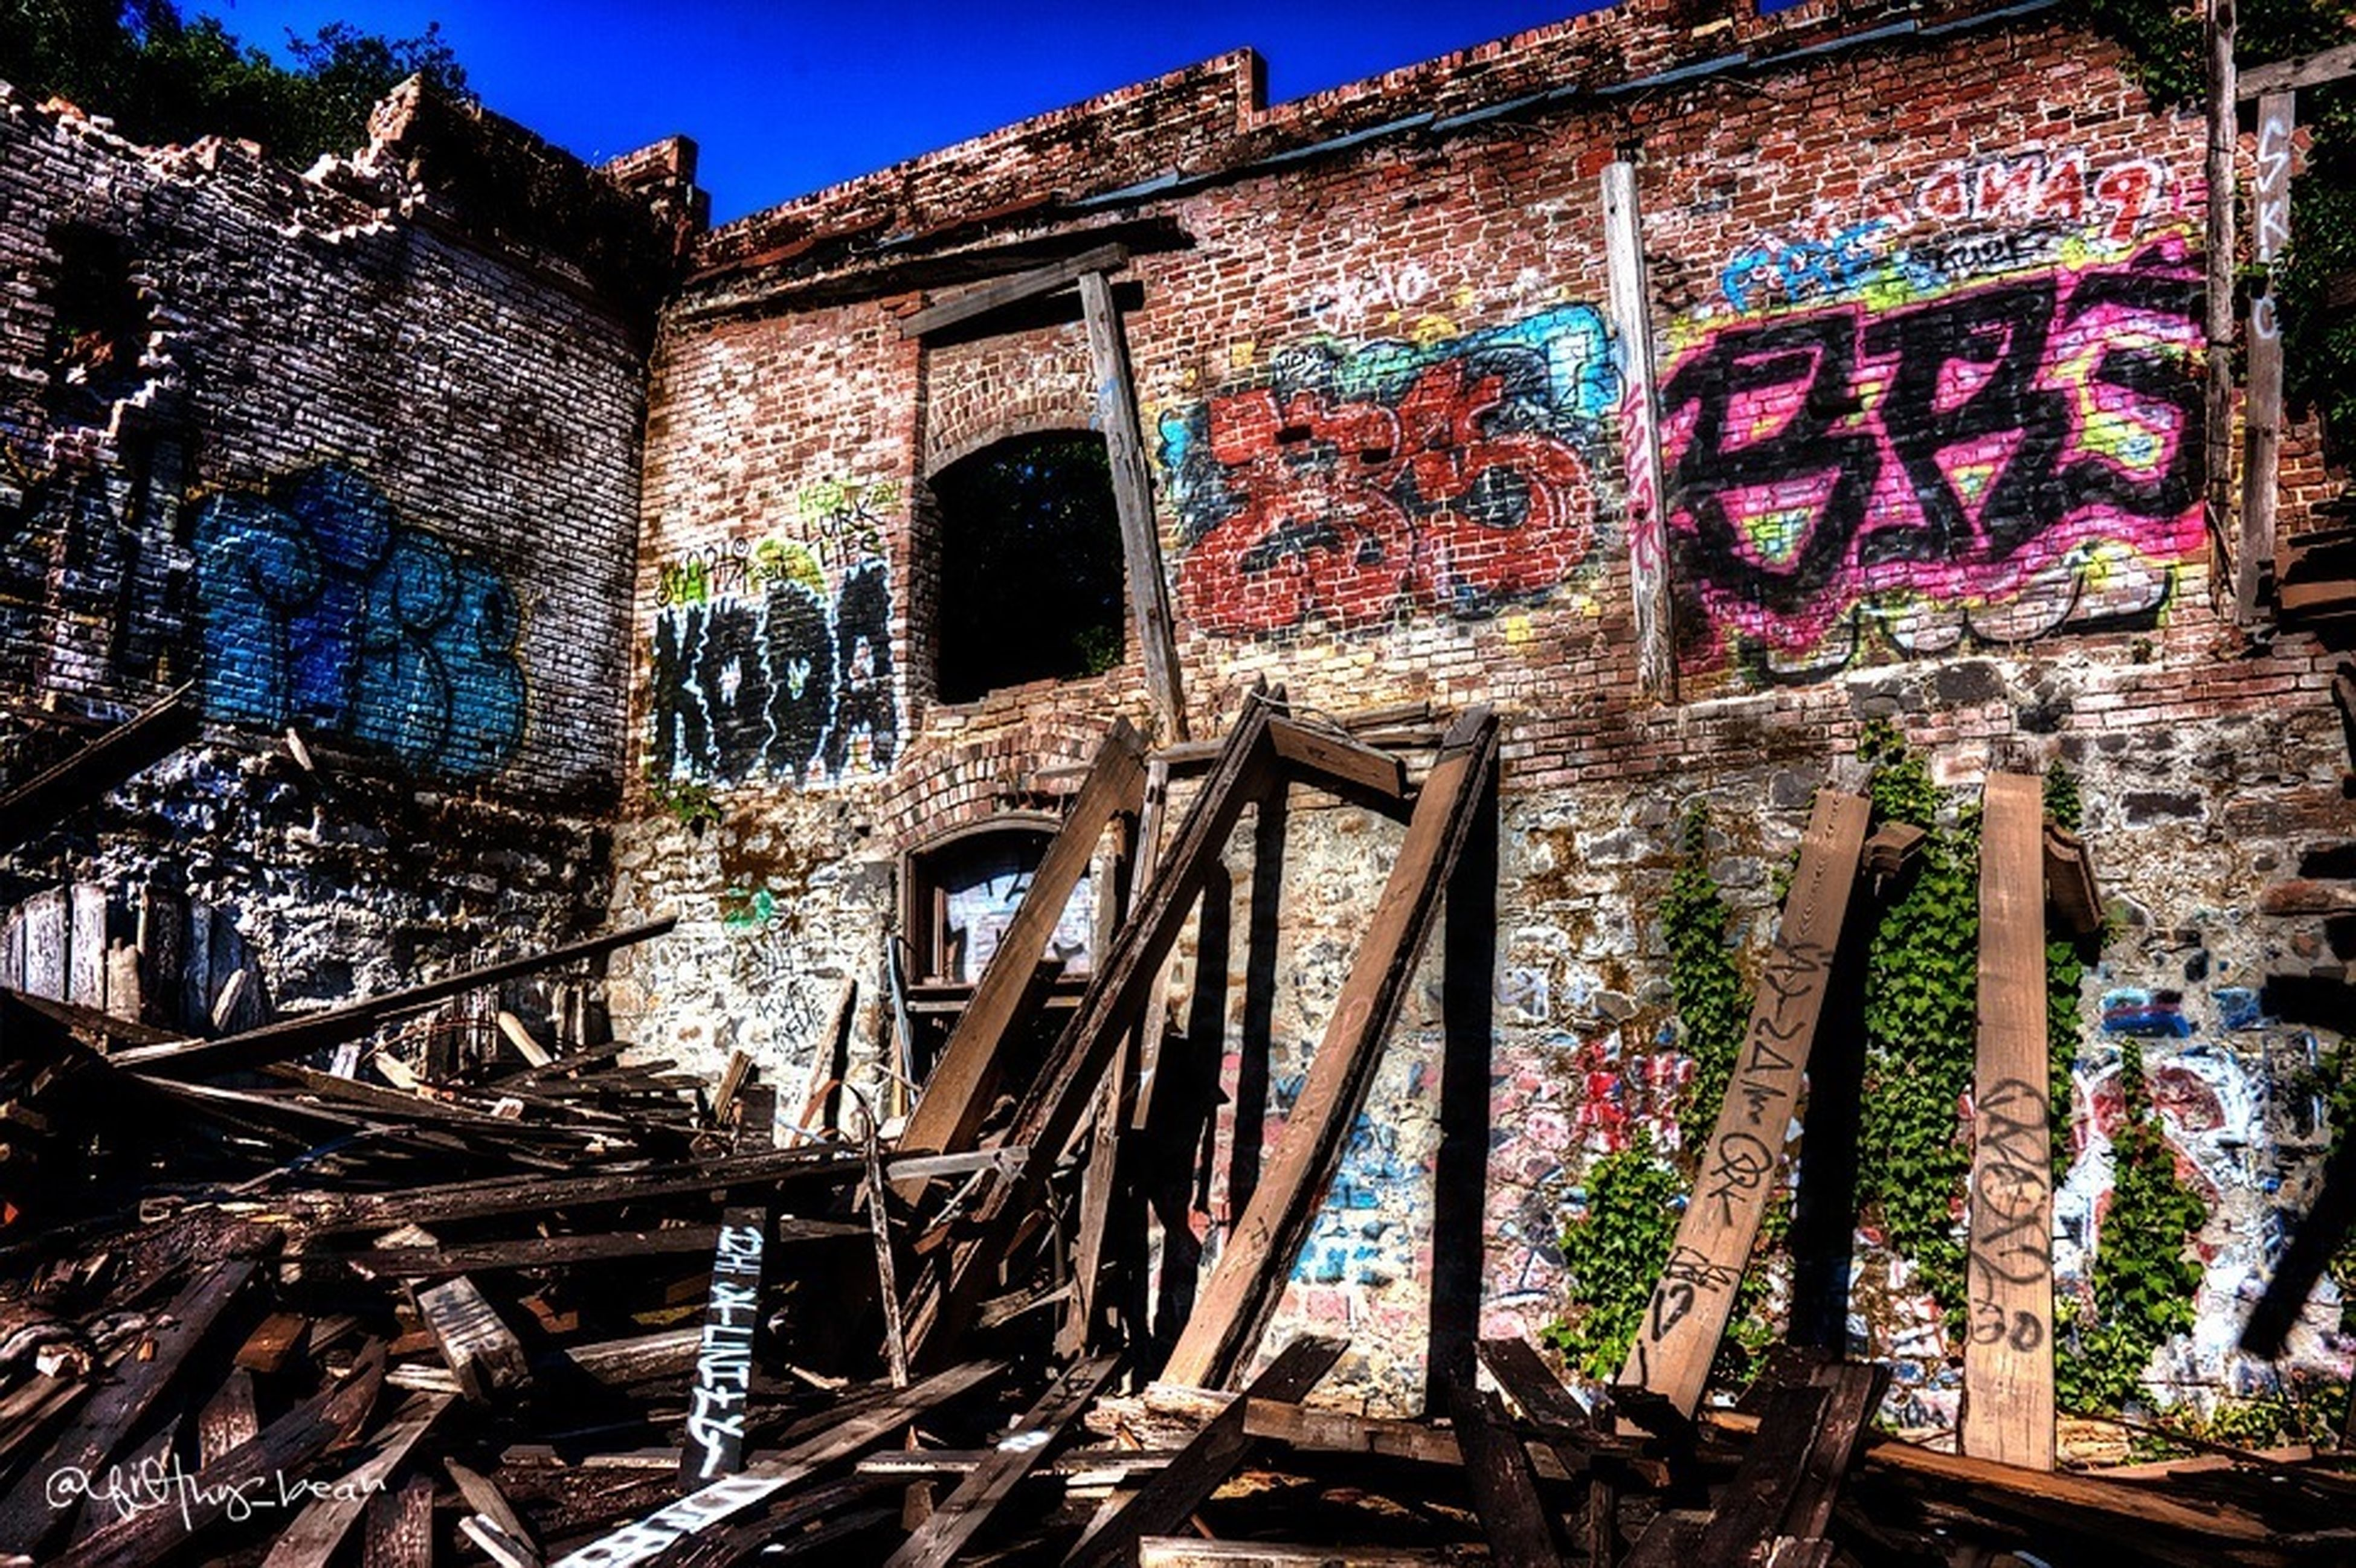 architecture, built structure, abandoned, building exterior, run-down, damaged, obsolete, deterioration, graffiti, old, weathered, bad condition, house, wall - building feature, destruction, blue, ruined, day, building, broken